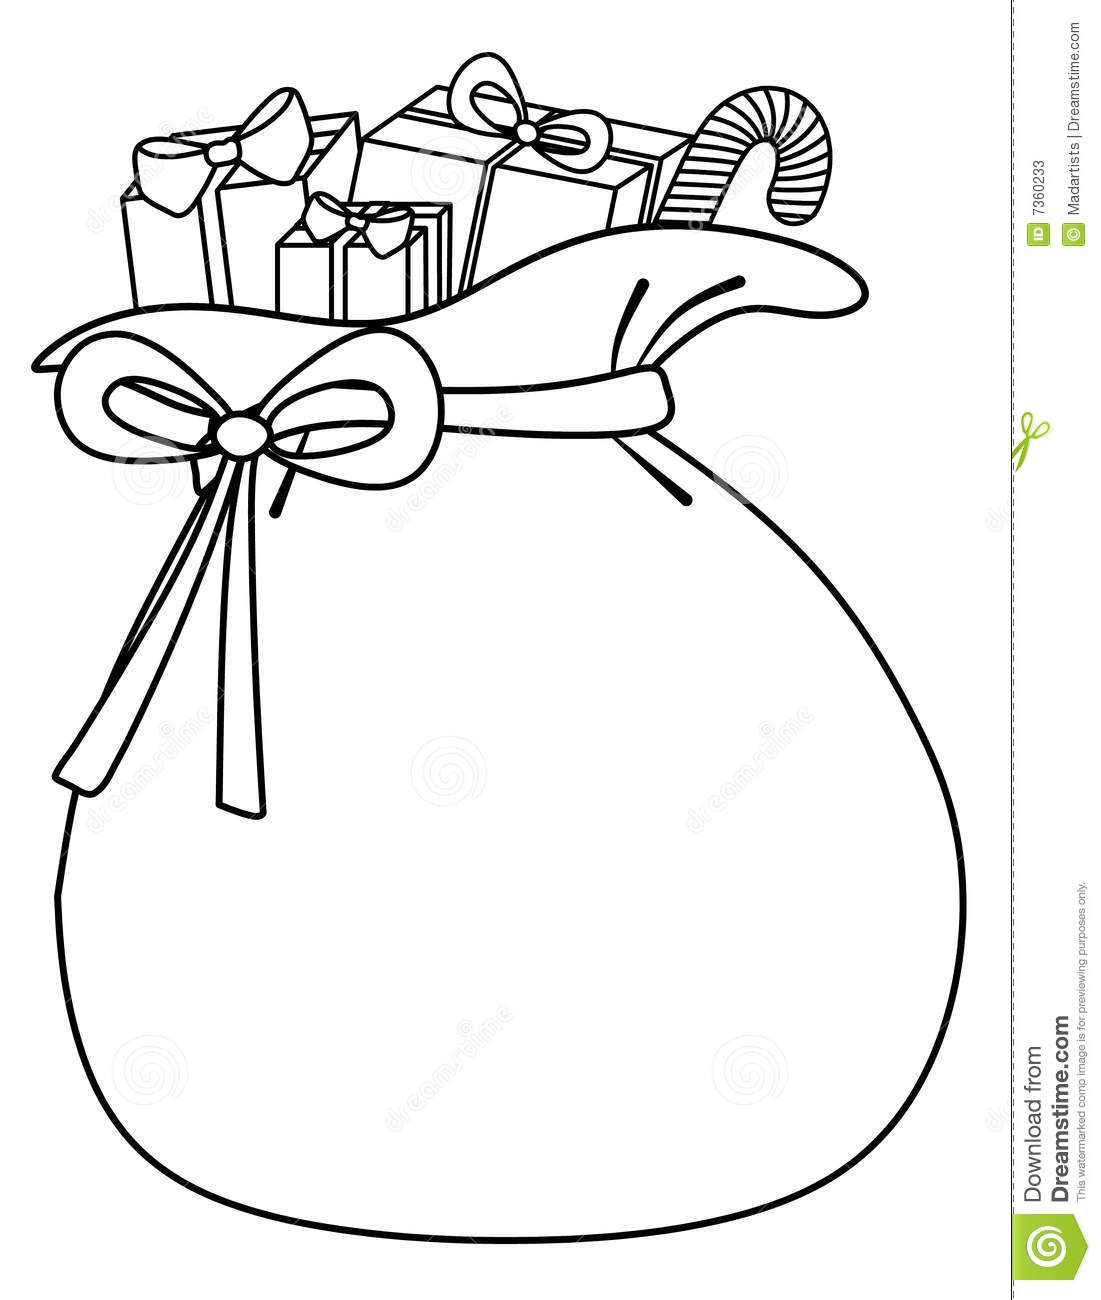 get free high quality hd wallpapers coloring pages santa chimney